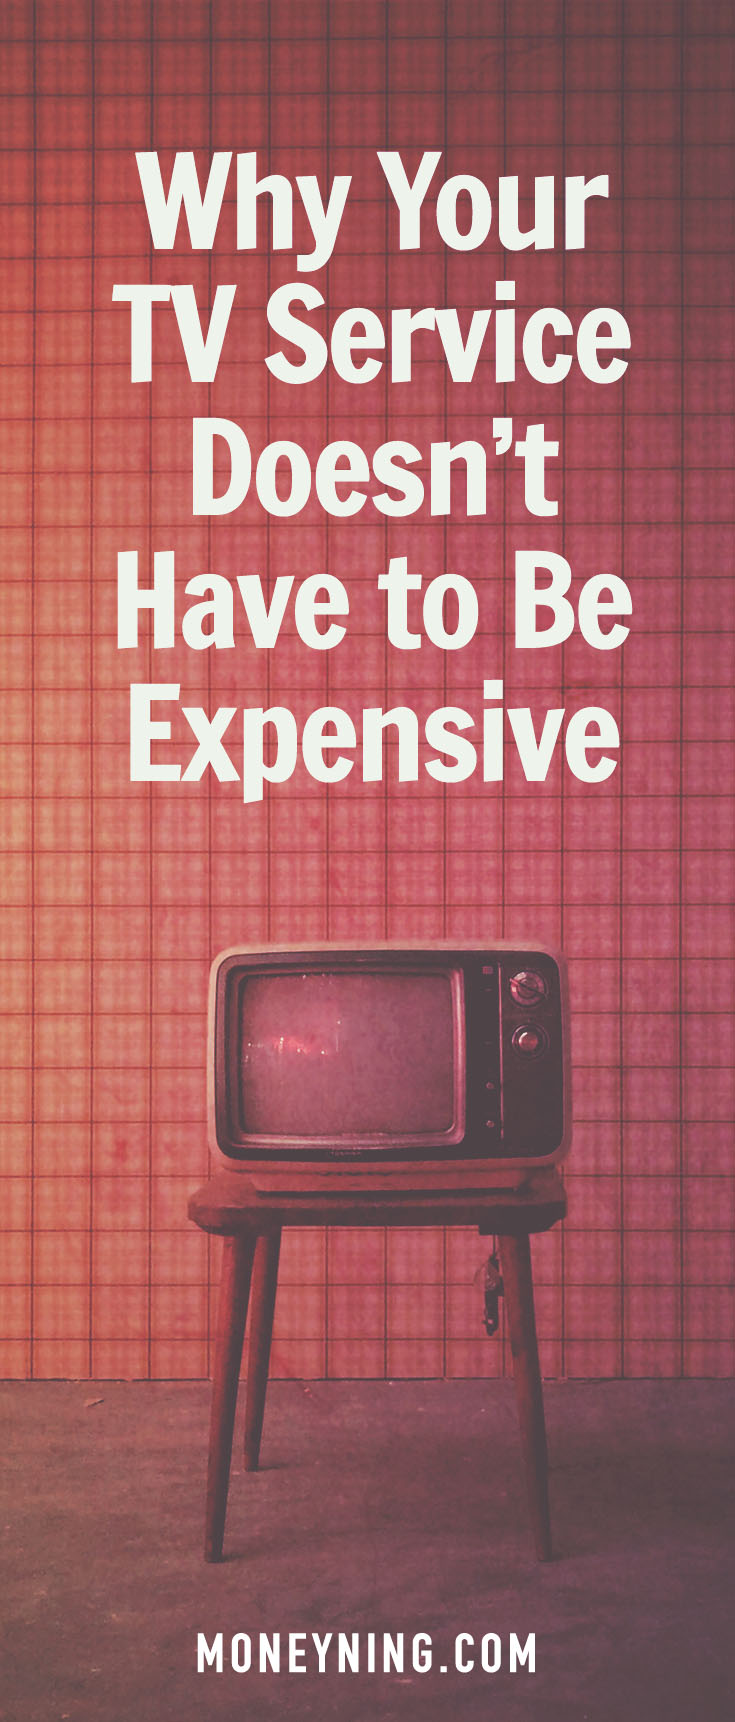 tv service expensive